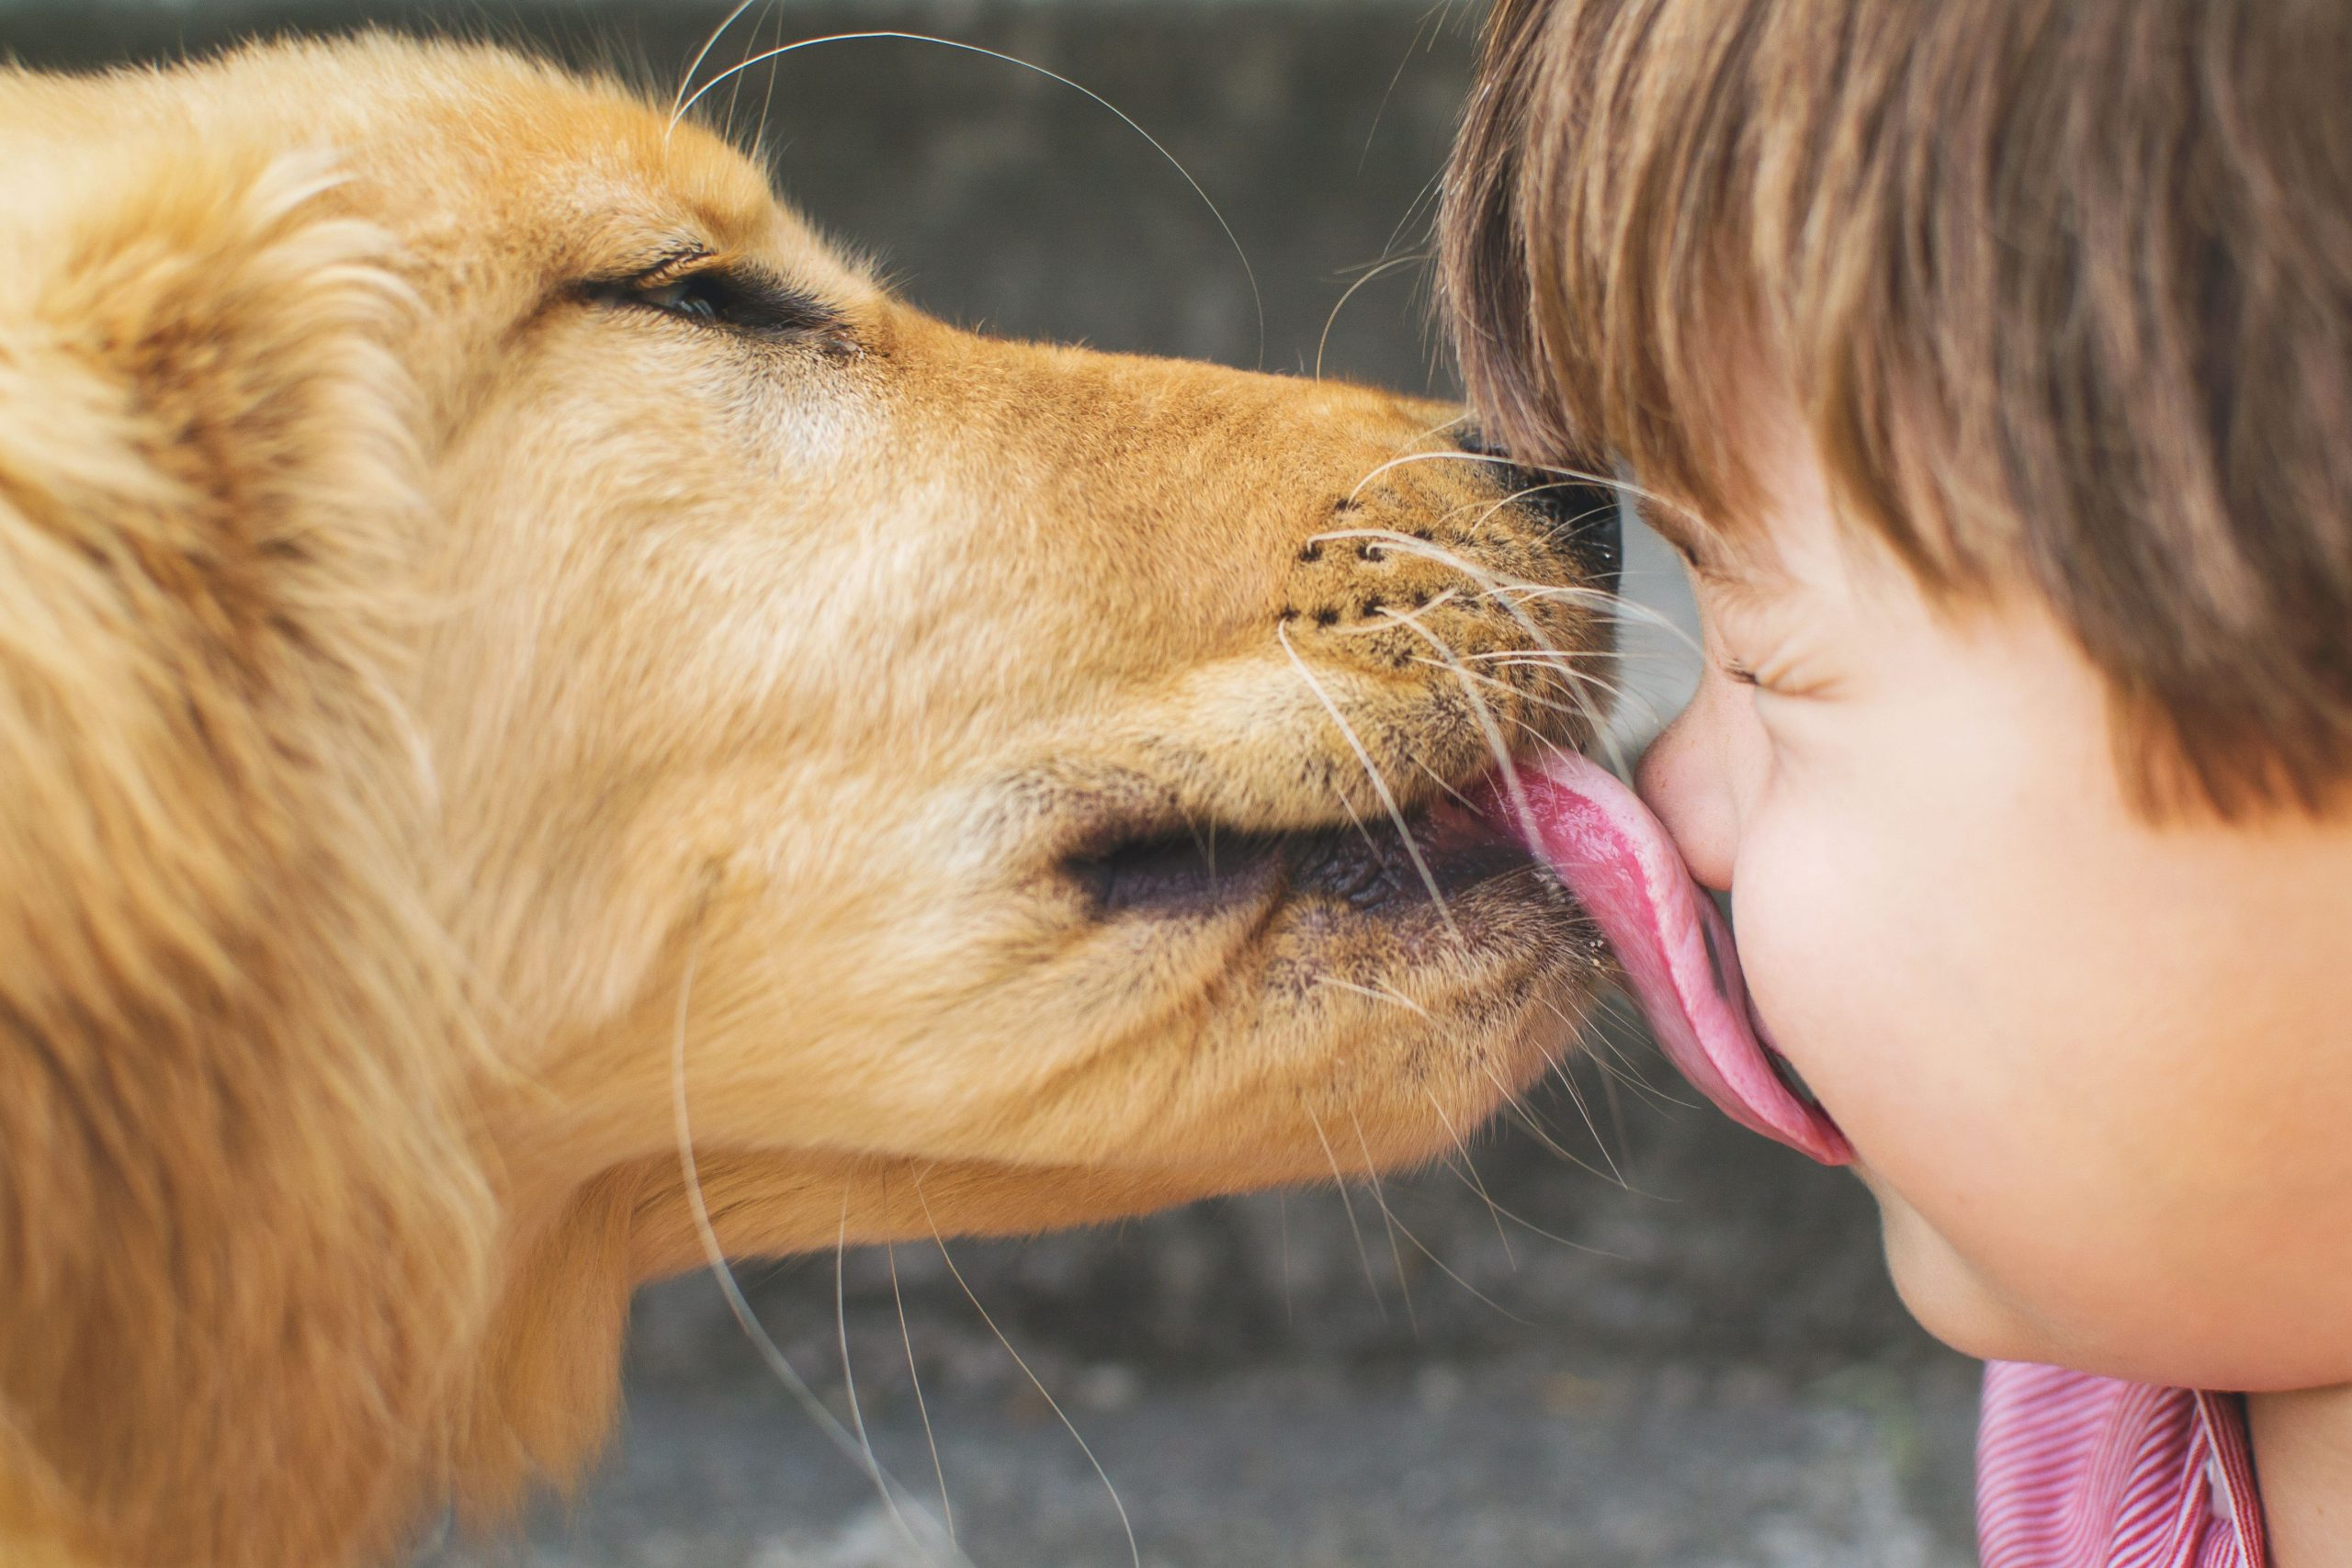 why do dogs love licking people?